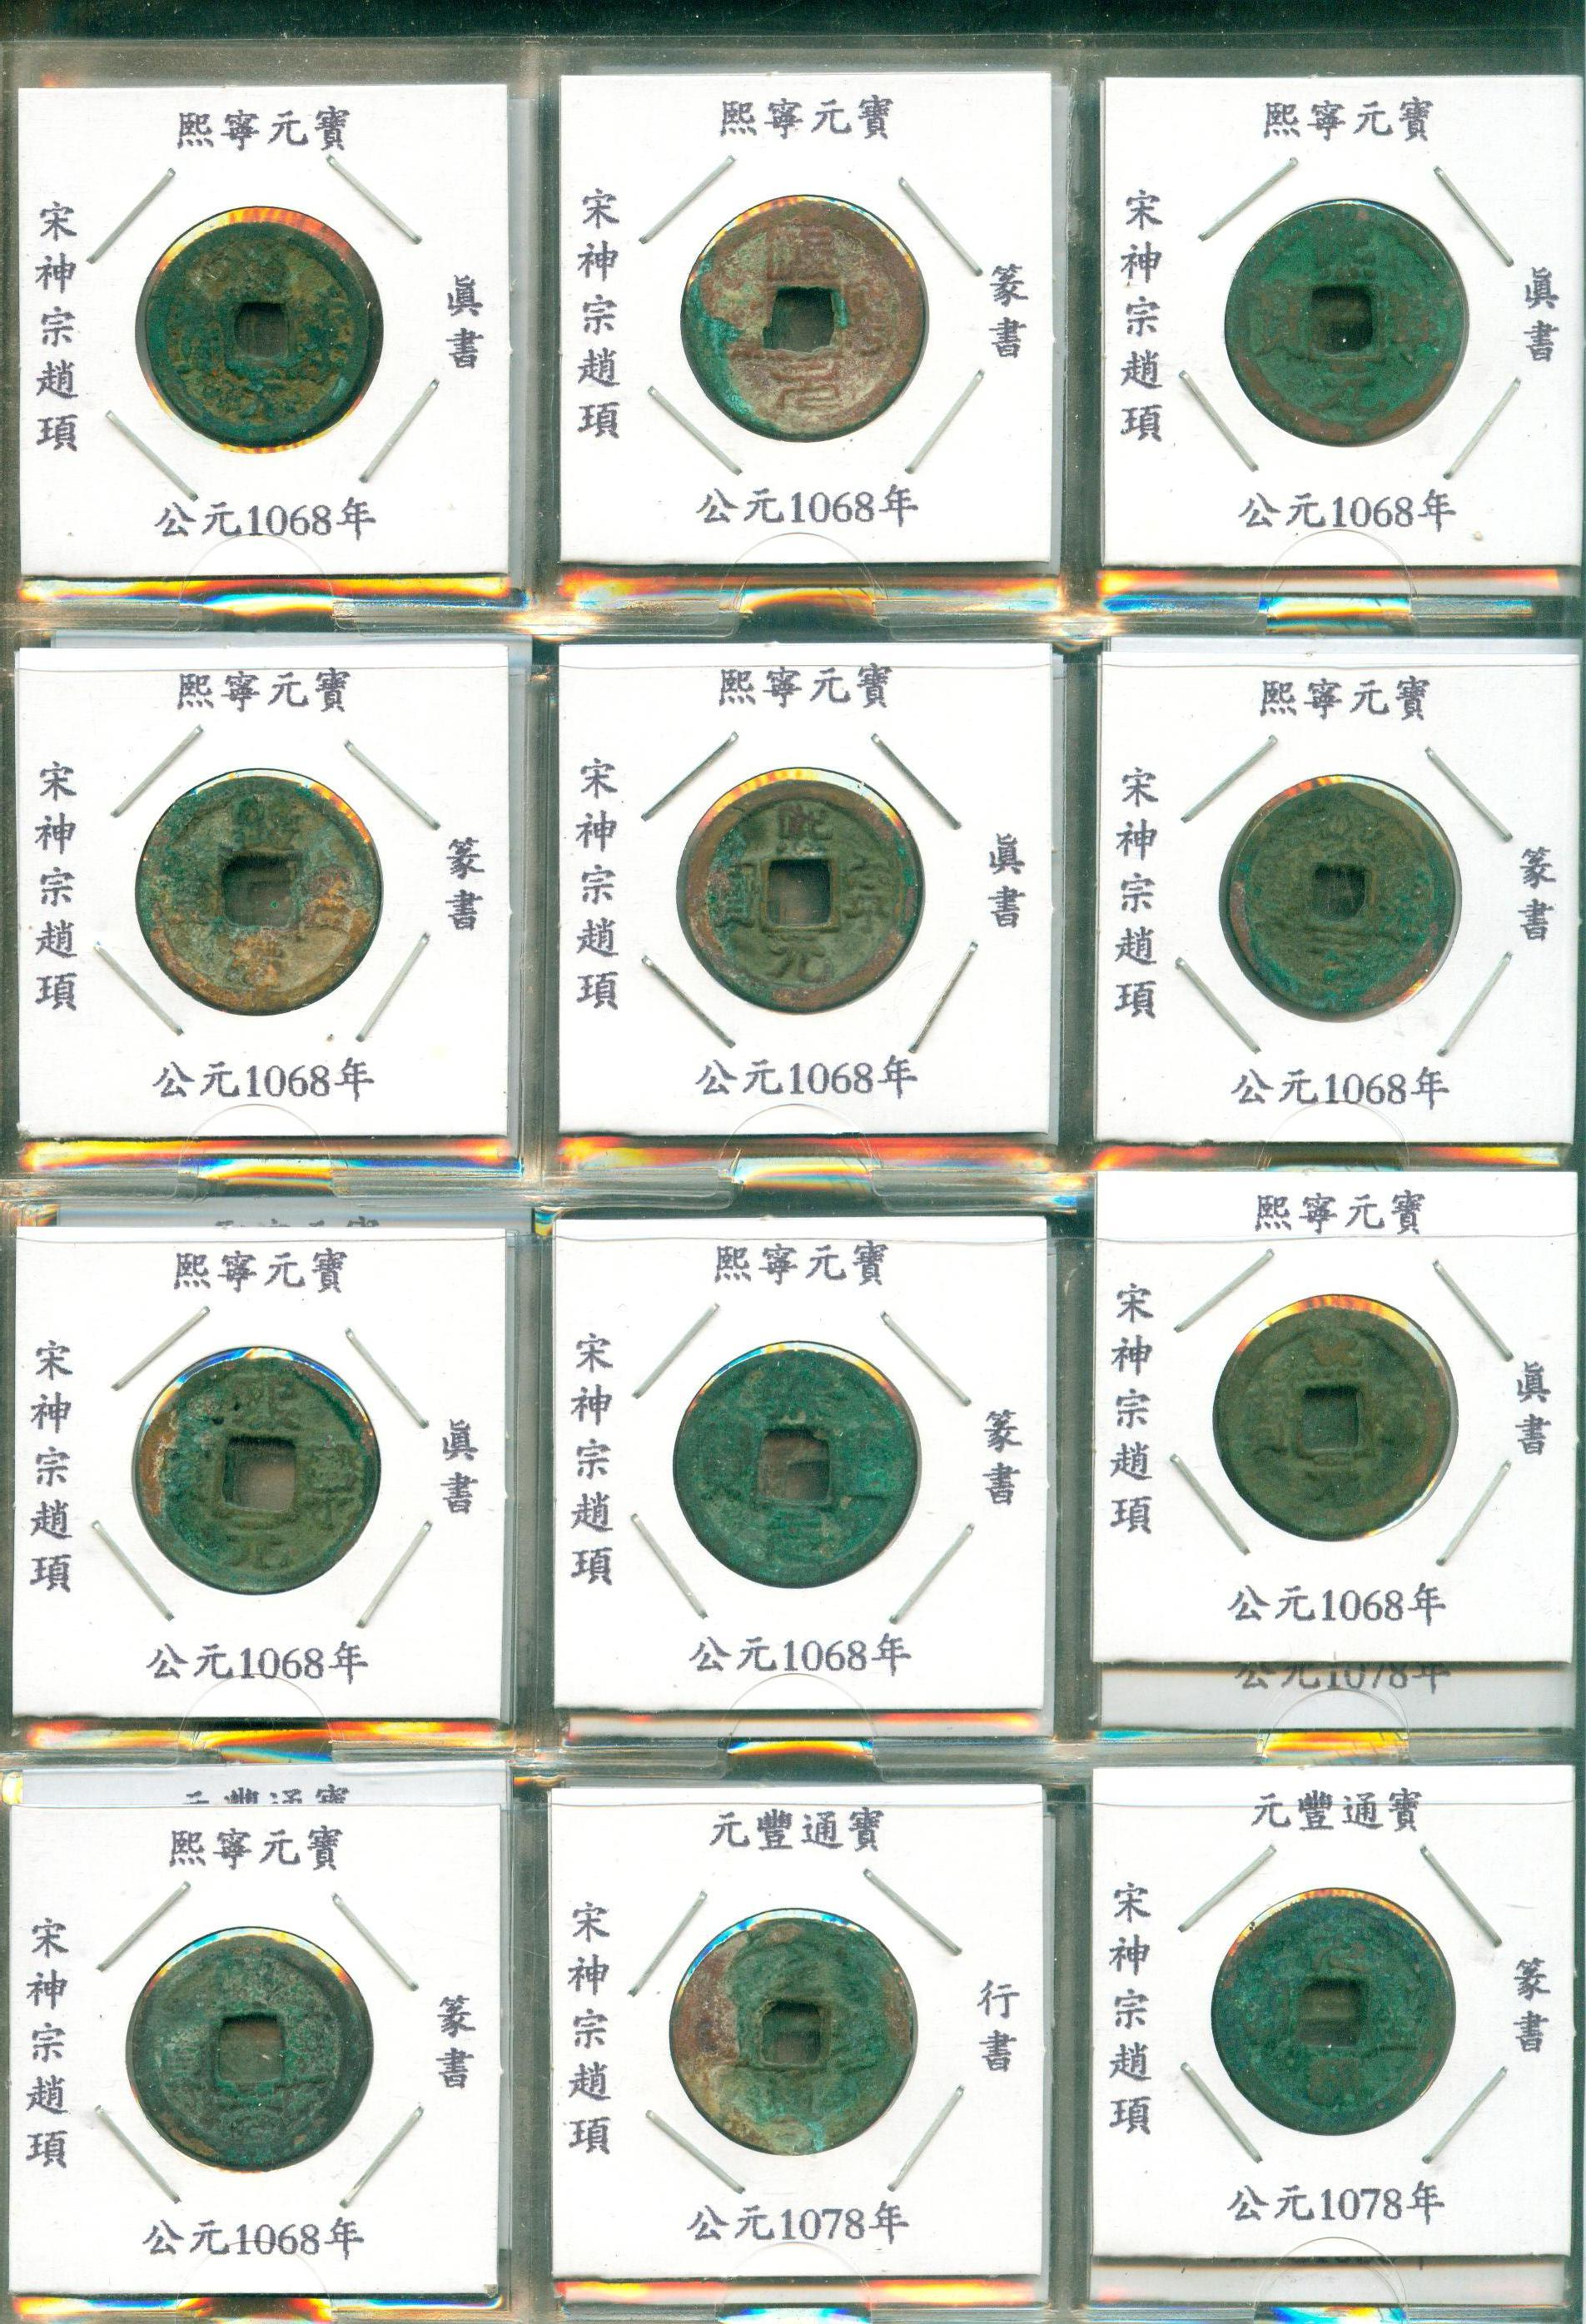 K6524, China 115 Pcs Diff. North Sung Dynasty Coins Collection, AD 960-1125